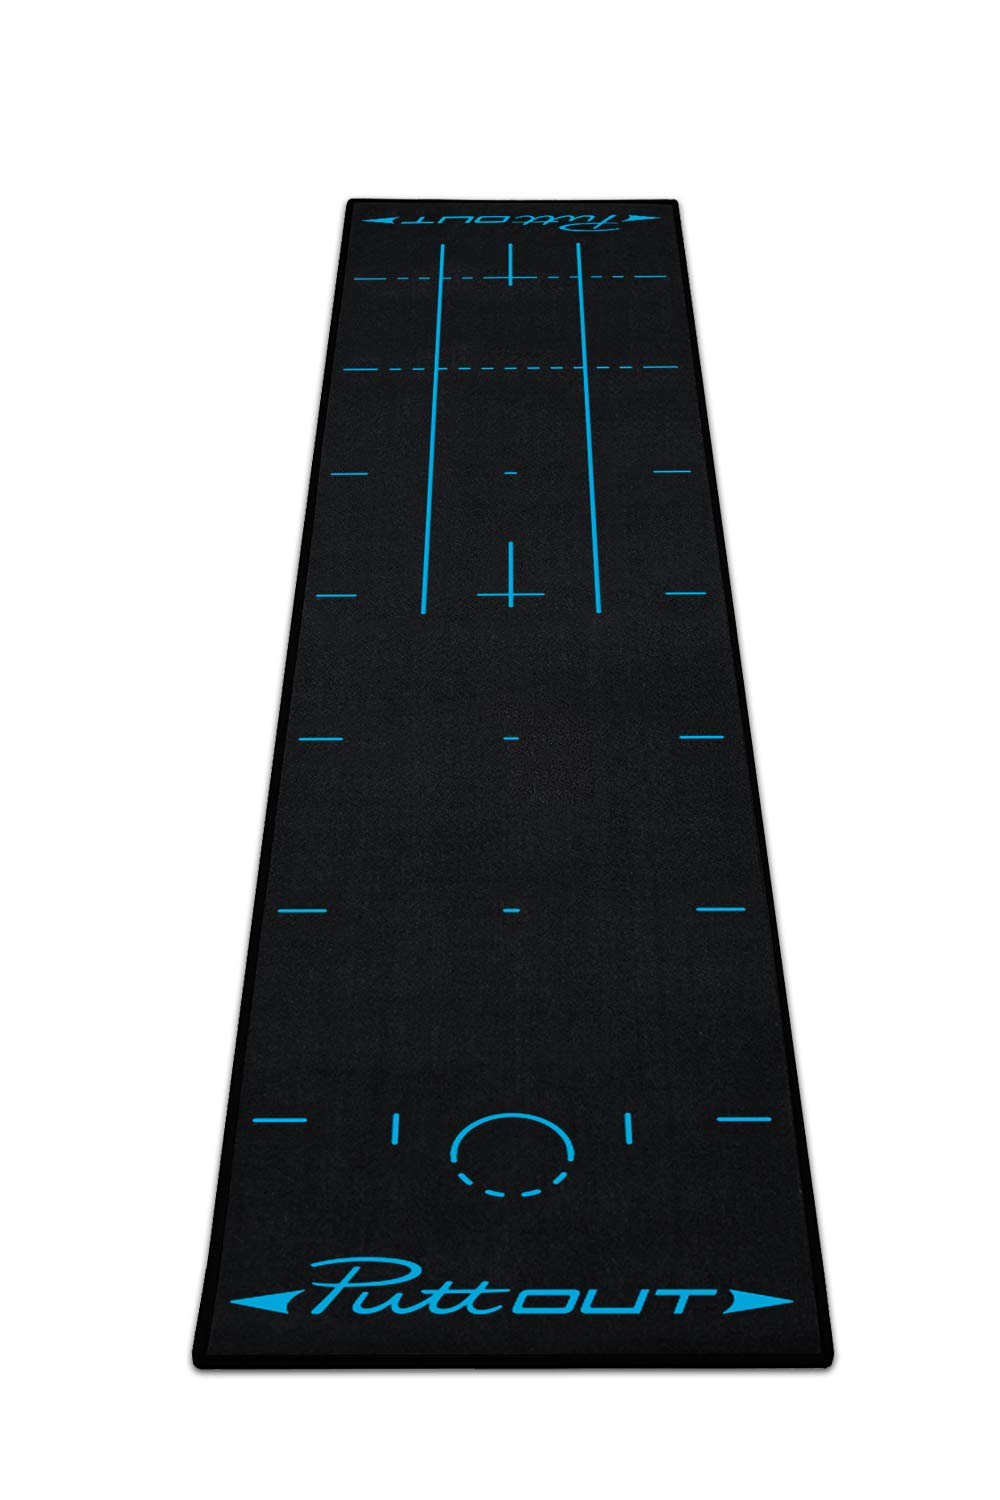 PuttOut Pro Golf Putting Mat - Perfect Your Putting (7.87-feet x 1.64-feet) (Blue/Black) by PuttOut